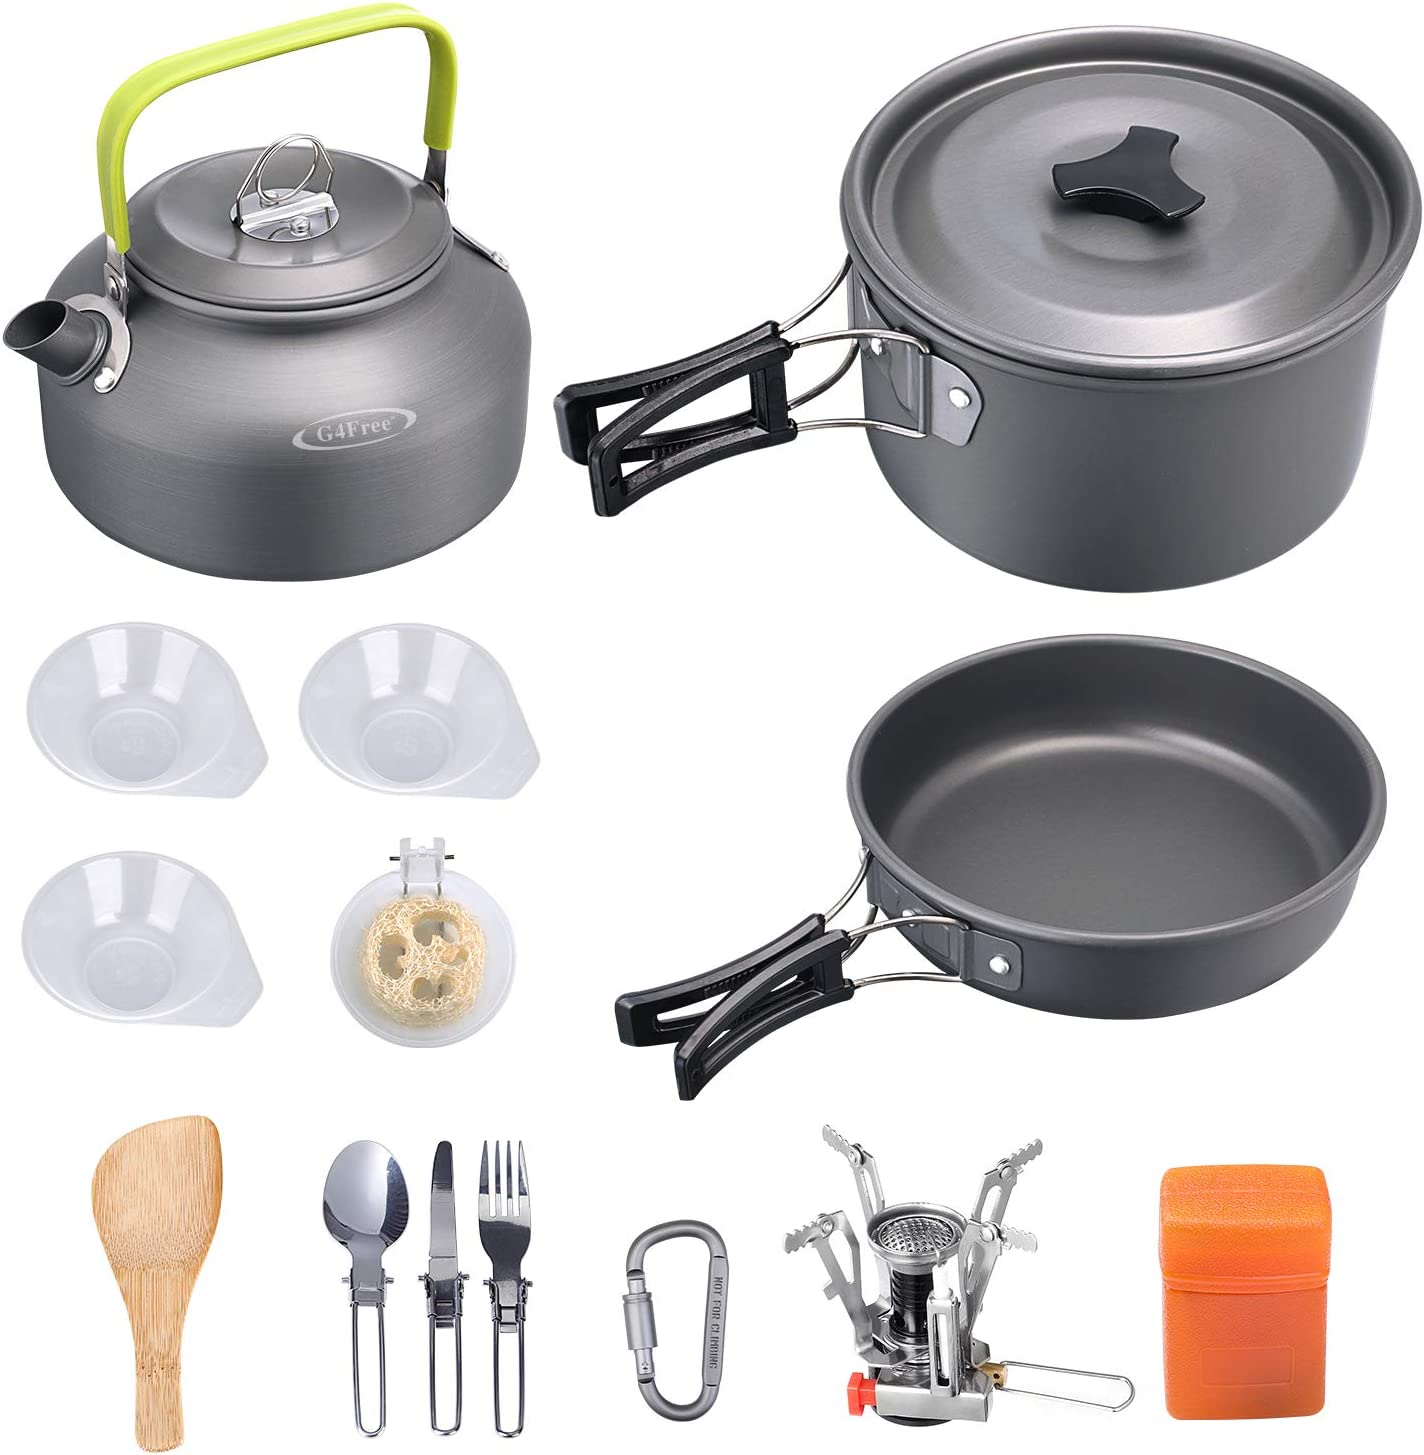 Max 50% OFF G4Free 13 15 PCS Camping Cookware Kit Campfire Outdo Mess Kettle Nashville-Davidson Mall